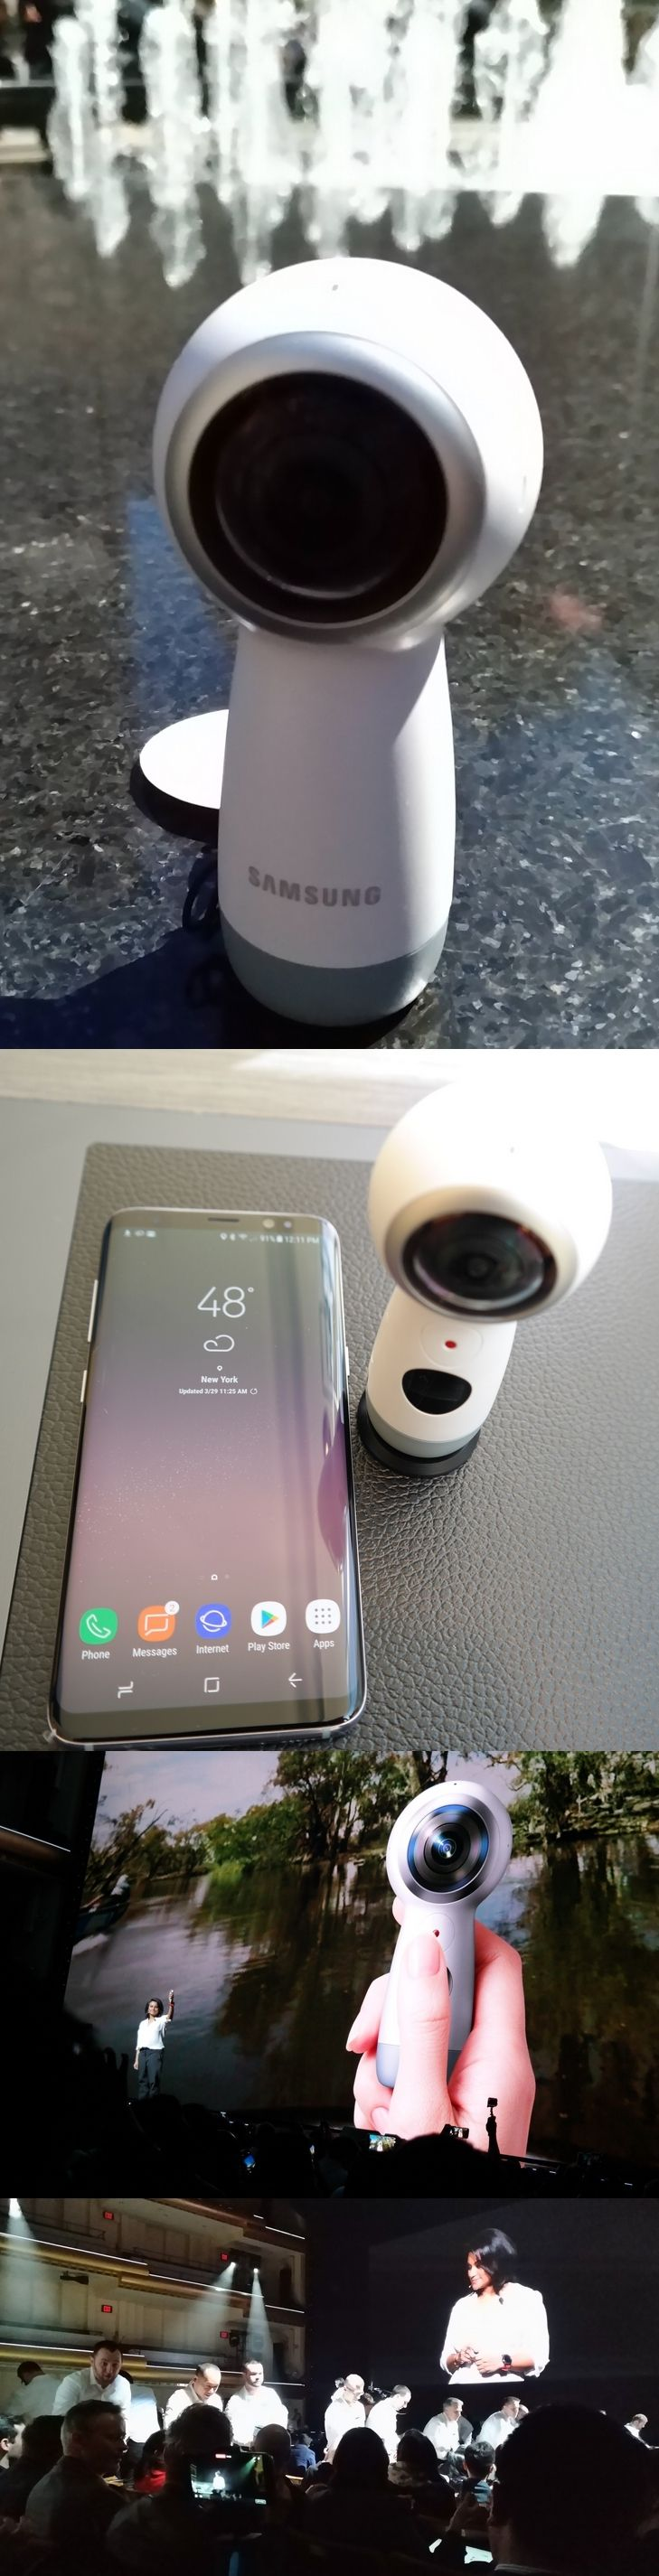 The @SamsungMobileUS Gear 360 had an Oprah moment March 29 as the new 360-degree live-streaming video camera was doled out to surprised guests at its #Unpacked2017 press event for the Galaxy S8 and S8+ smartphones. It has two f/2.2 lenses, 8.4-megapixel sensors, supports 4K-resolution and links via Wi-Fi, Bluetooth or USB-C cable. Unlike its older round sibling, it has a handle. Users can live stream on Facebook, YouTube and Samsung VR. Videos can be converted to other formats for sharing.